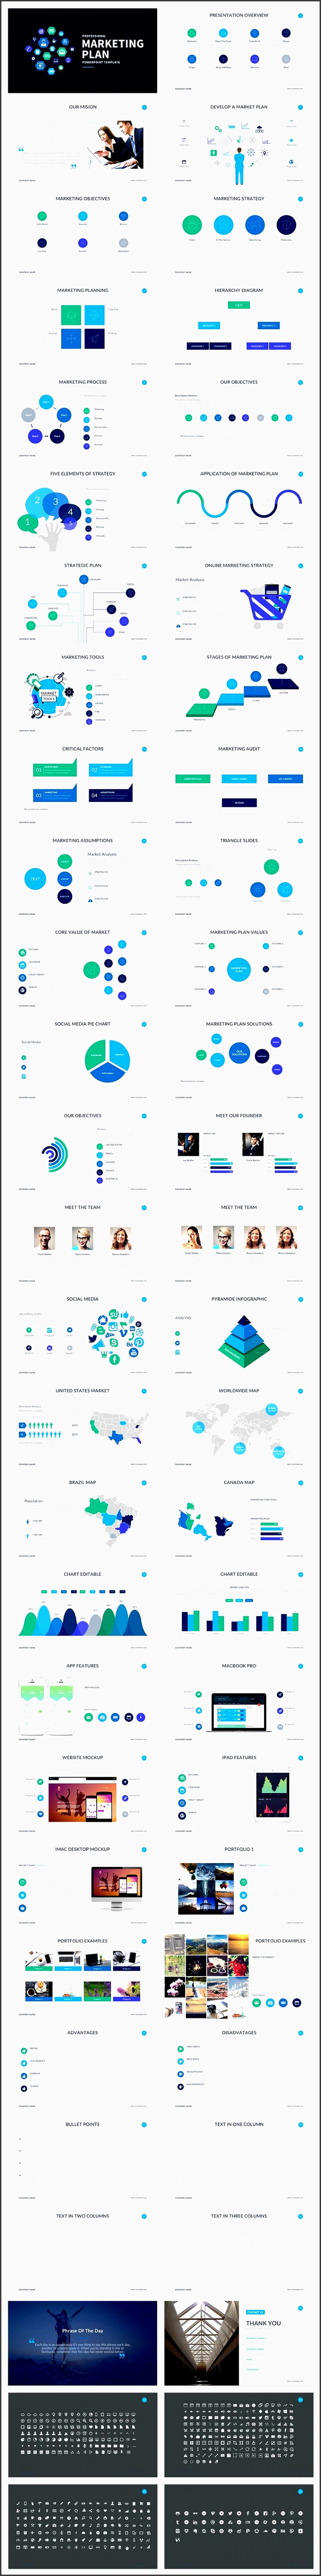 marketing plan powerpoint template by slidepro on creativemarket